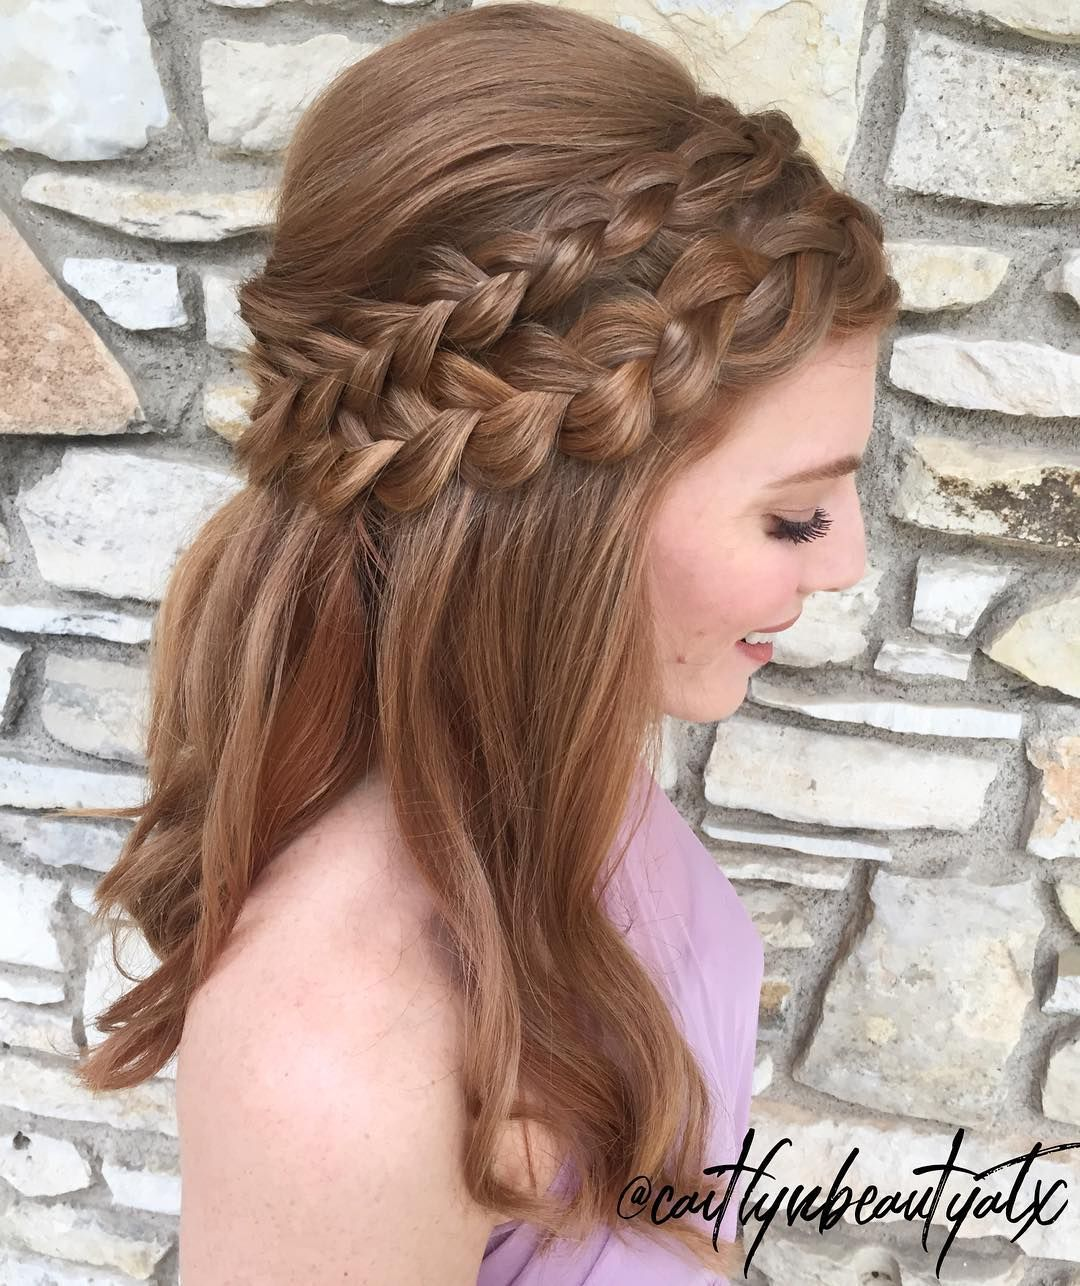 double french dutch braid half up, half down style. perfect